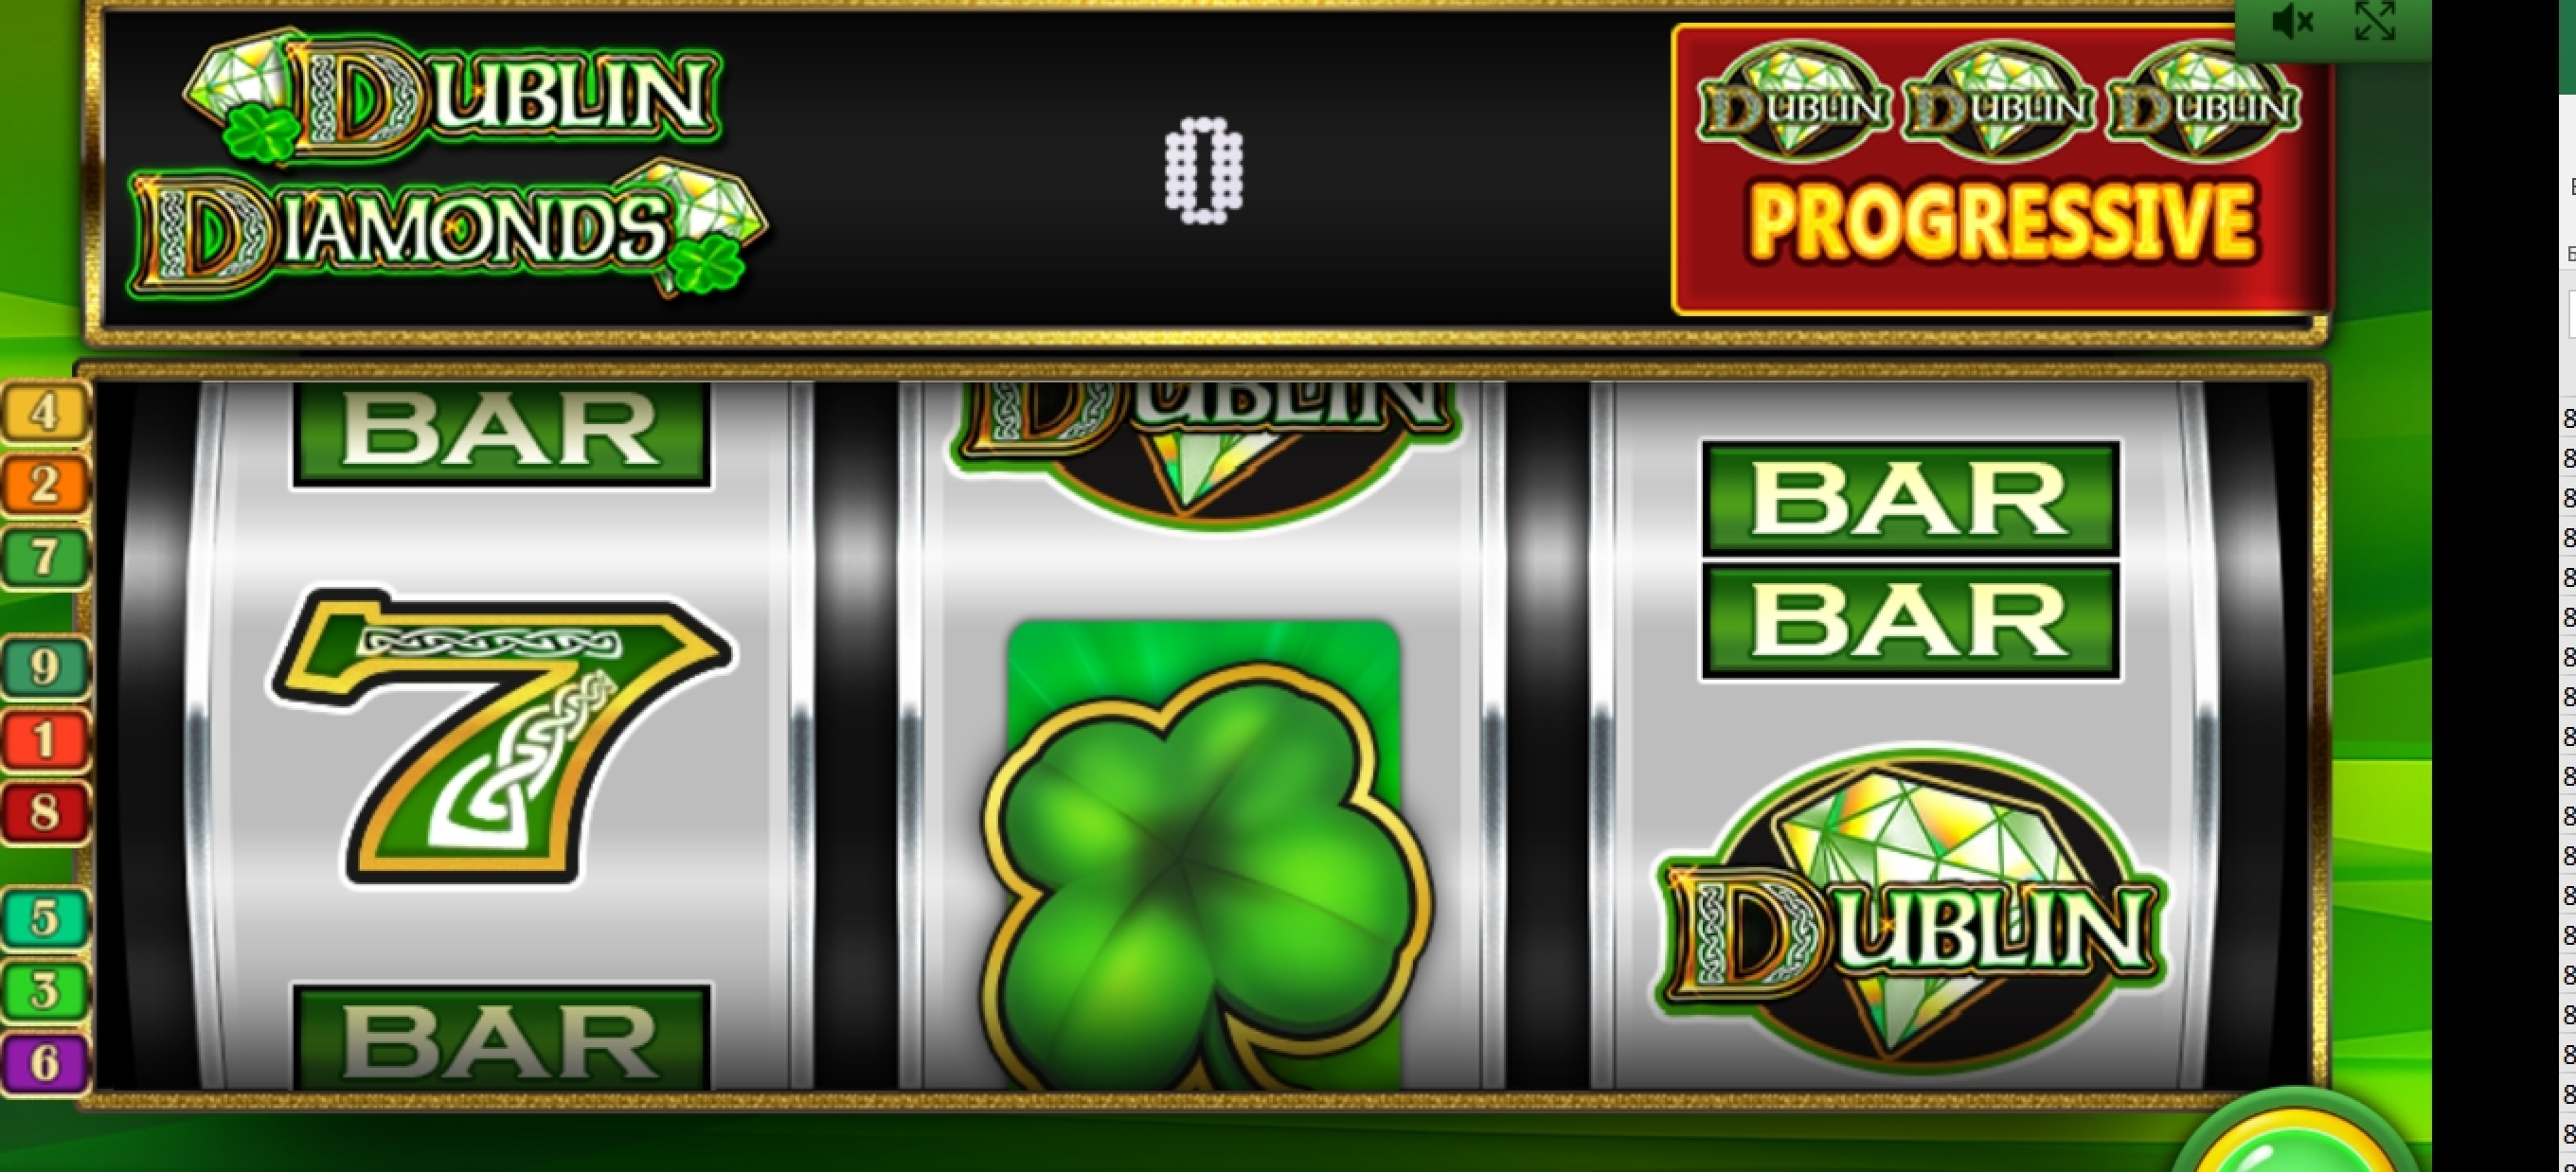 Reels in Dublin Diamonds Slot Game by IGT